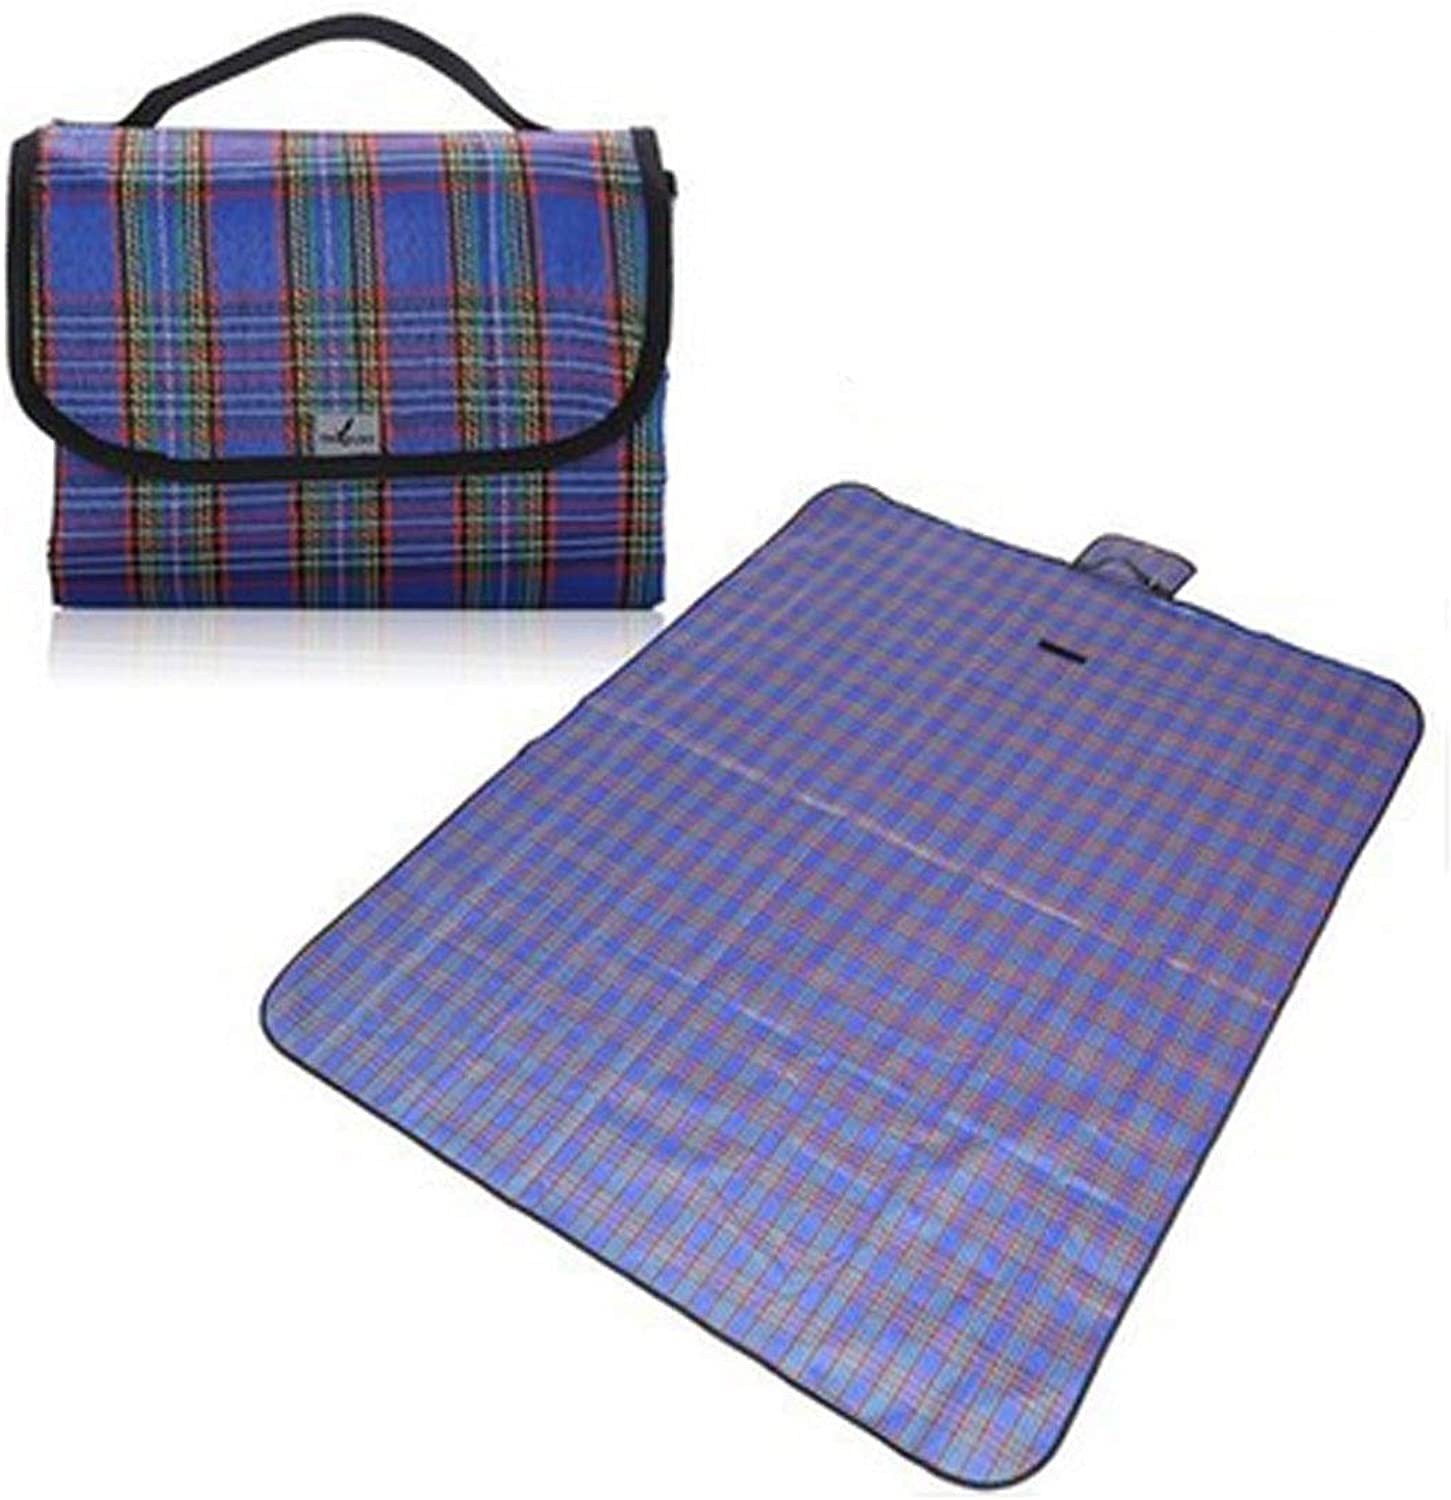 Camping Mat, Outdoor Waterproof Beach Mat, 200  150 cm, Suitable for Outdoor Travel, Multicolor Optional (color   A01, Size   200  1500cm)